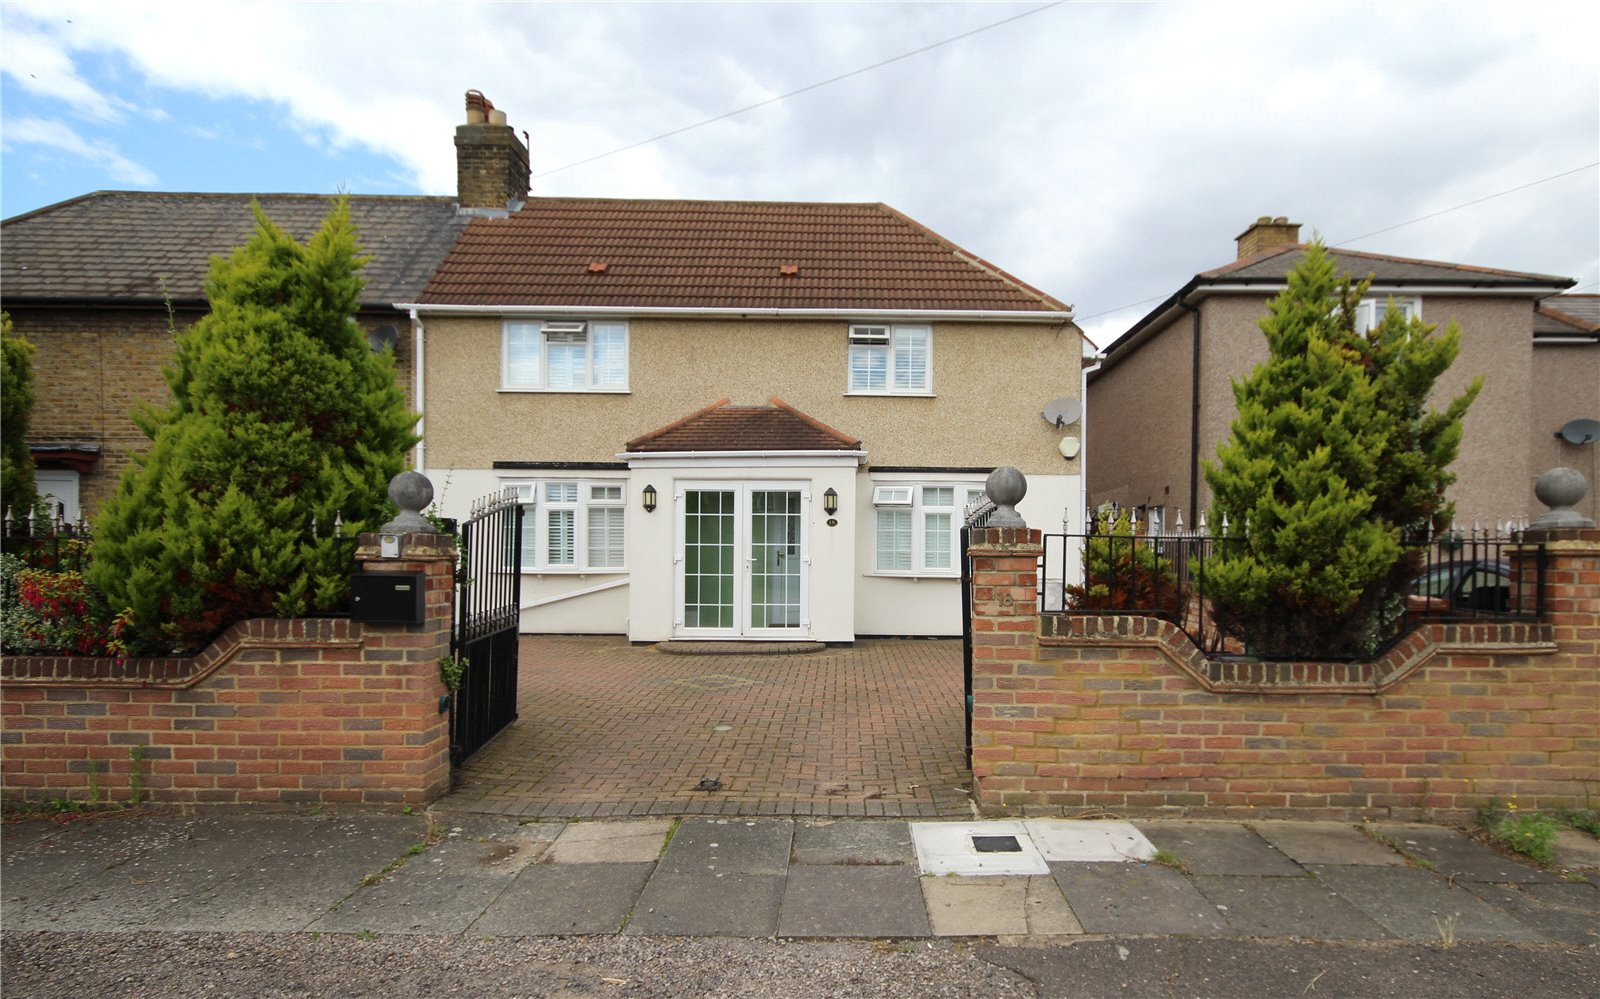 Norfolk Place, Welling, Kent, DA16